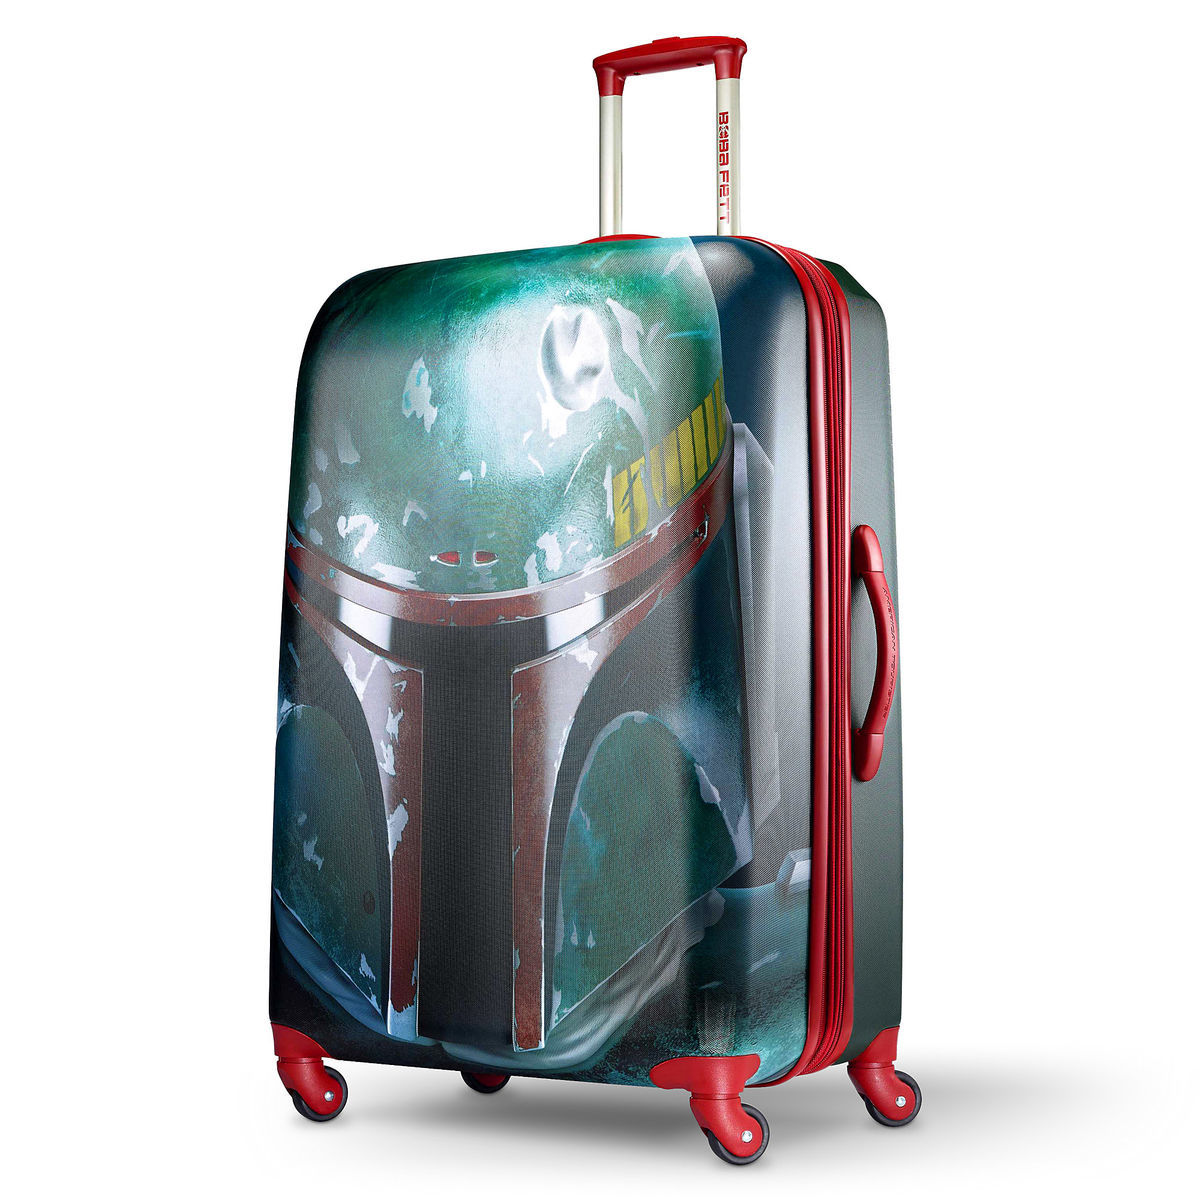 Product Image of Boba Fett Luggage - Star Wars - American Tourister - Large    1 1a5d0eed04